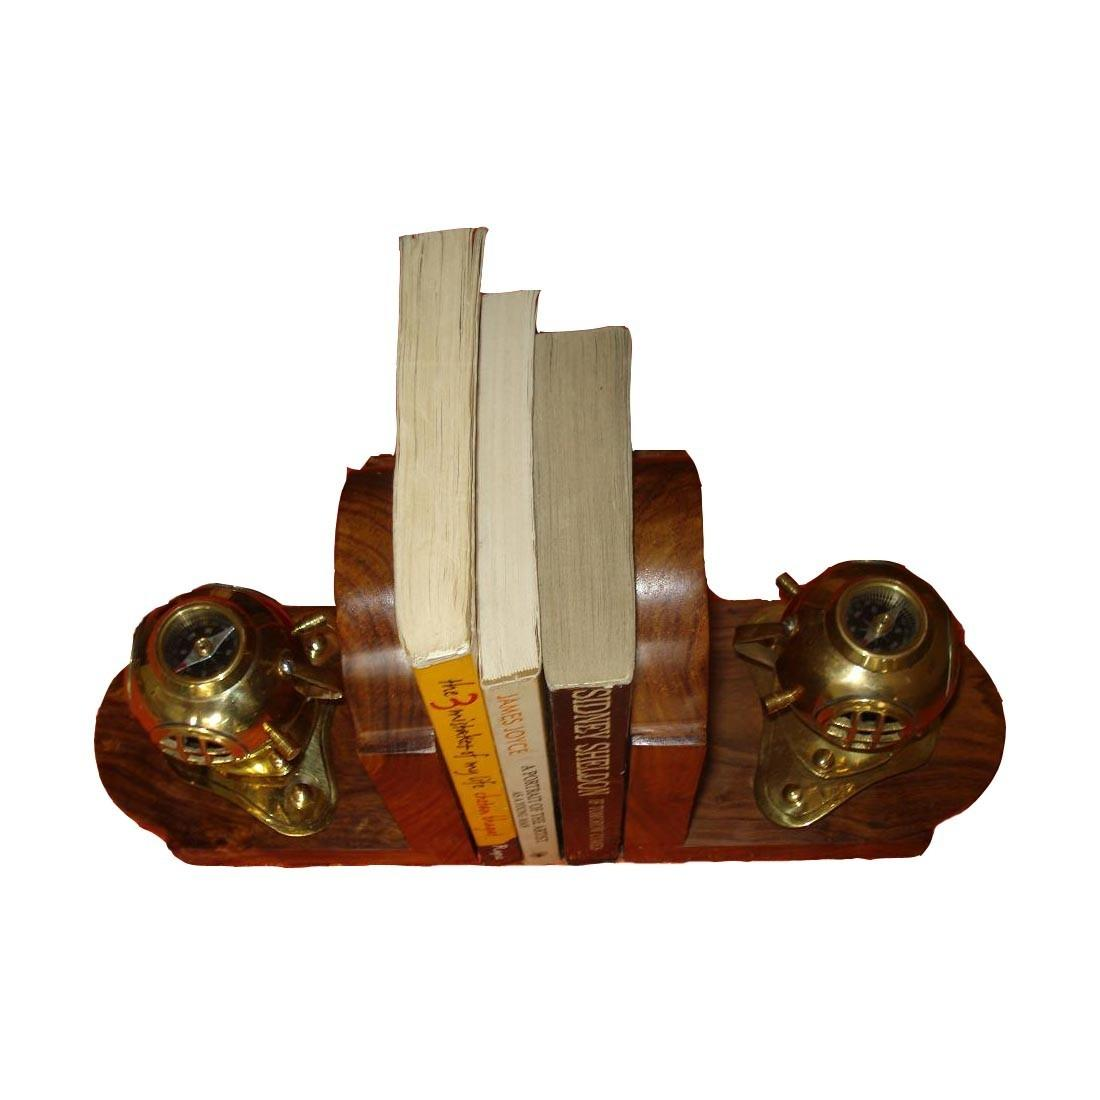 Buy Brass Bookend Decorative Divers Helomet Bookends